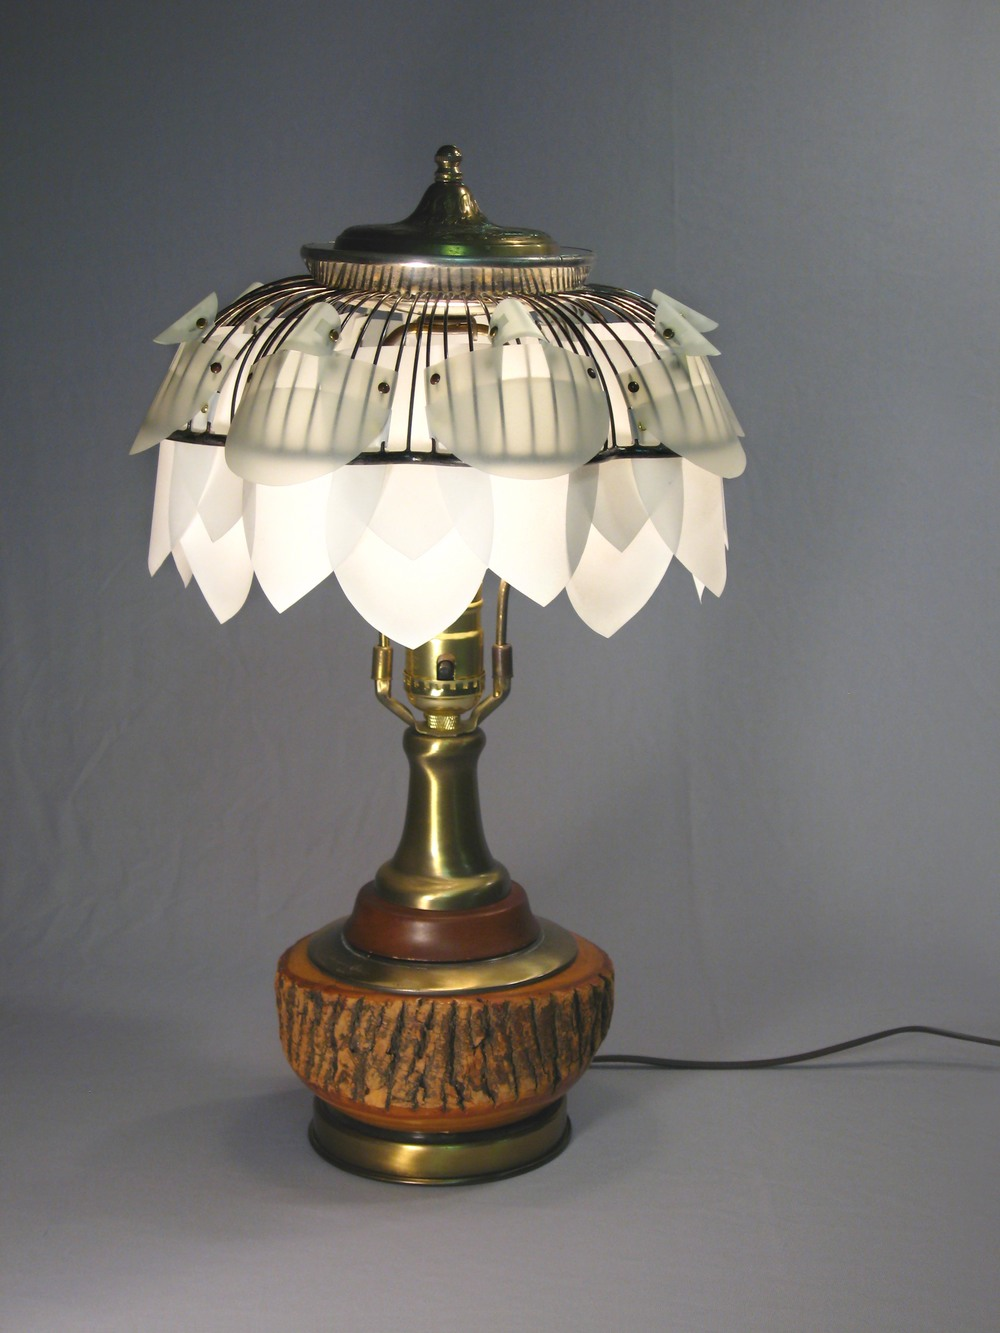 tree_lamp copy.jpg